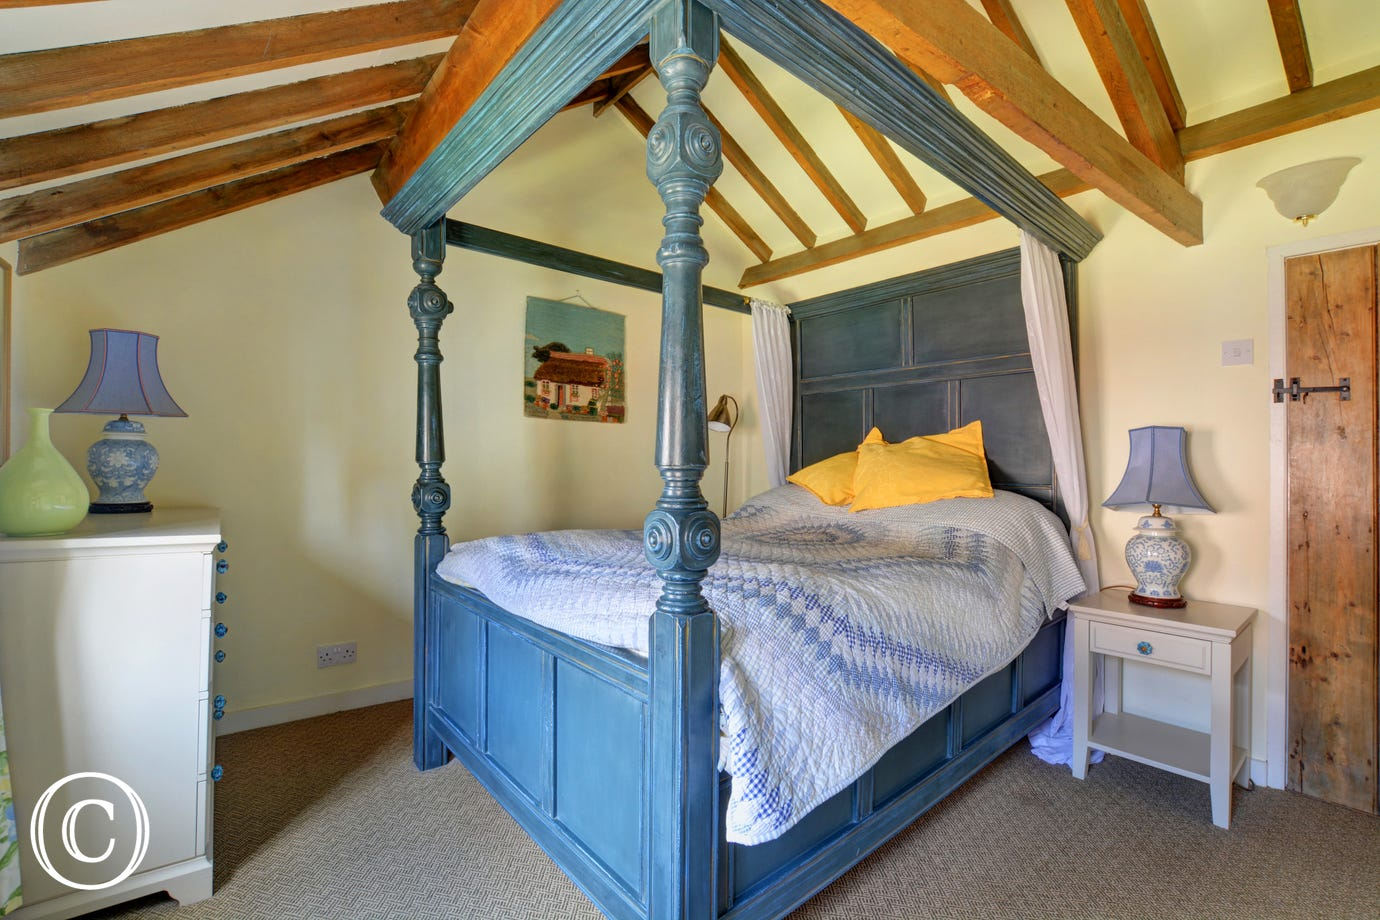 Showing four poster wooden bed.